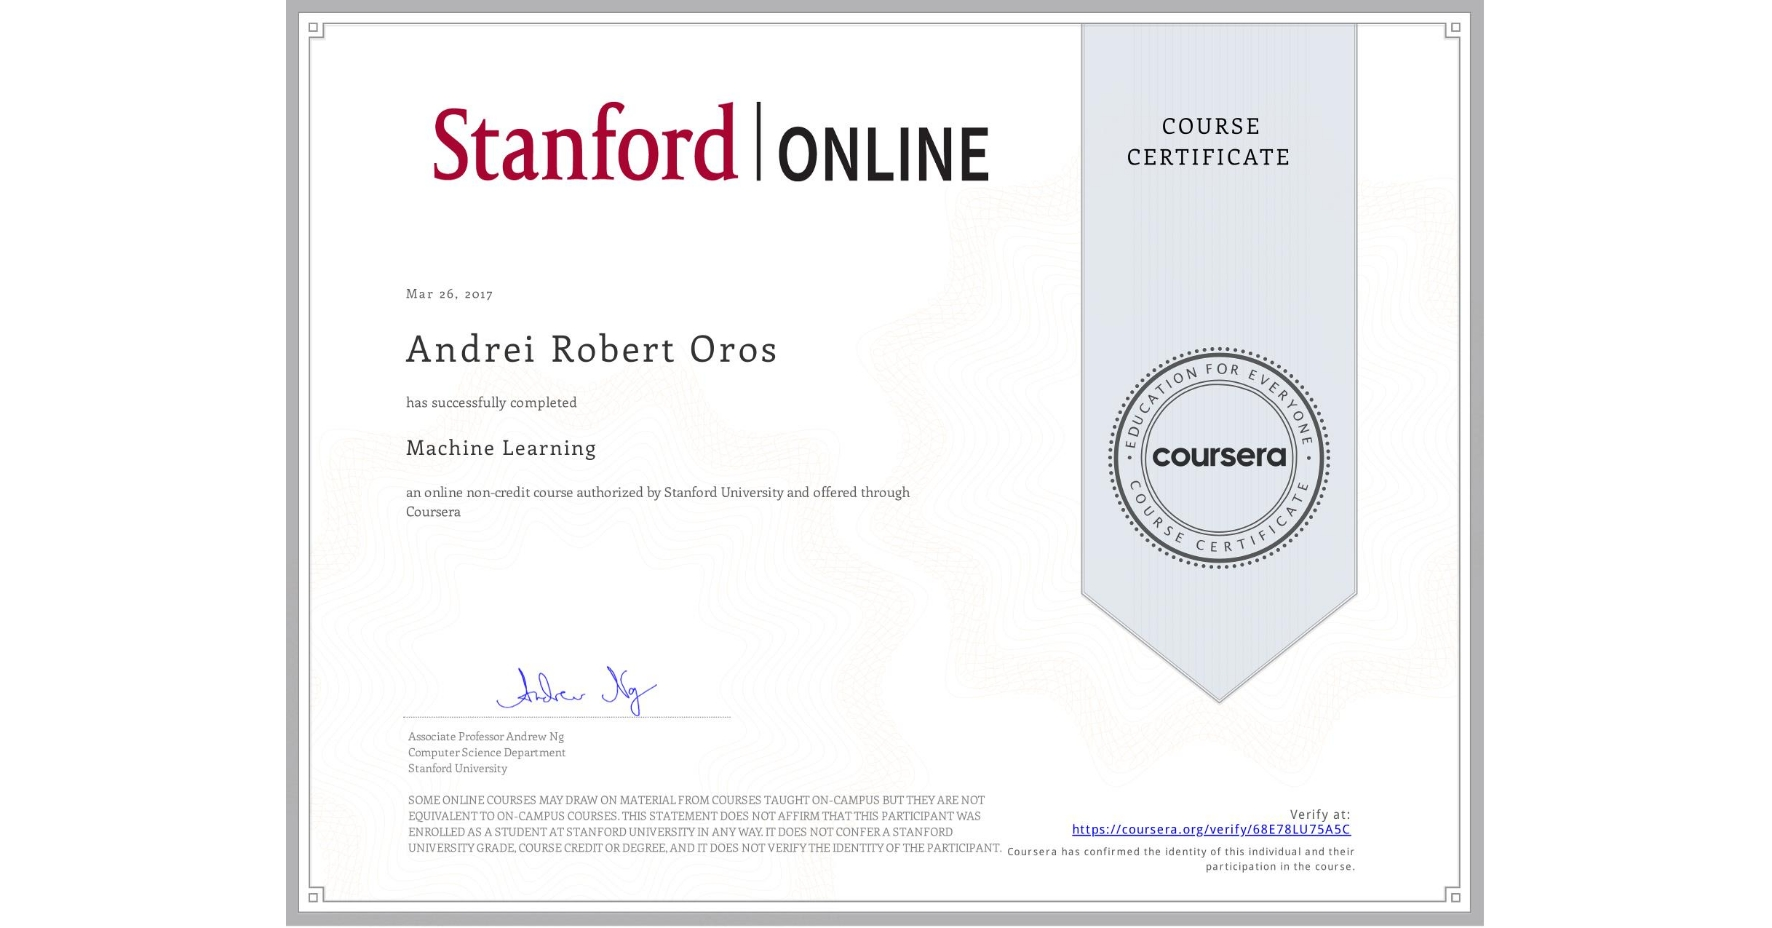 View certificate for Andrei Robert Oros, Machine Learning, an online non-credit course authorized by Stanford University and offered through Coursera